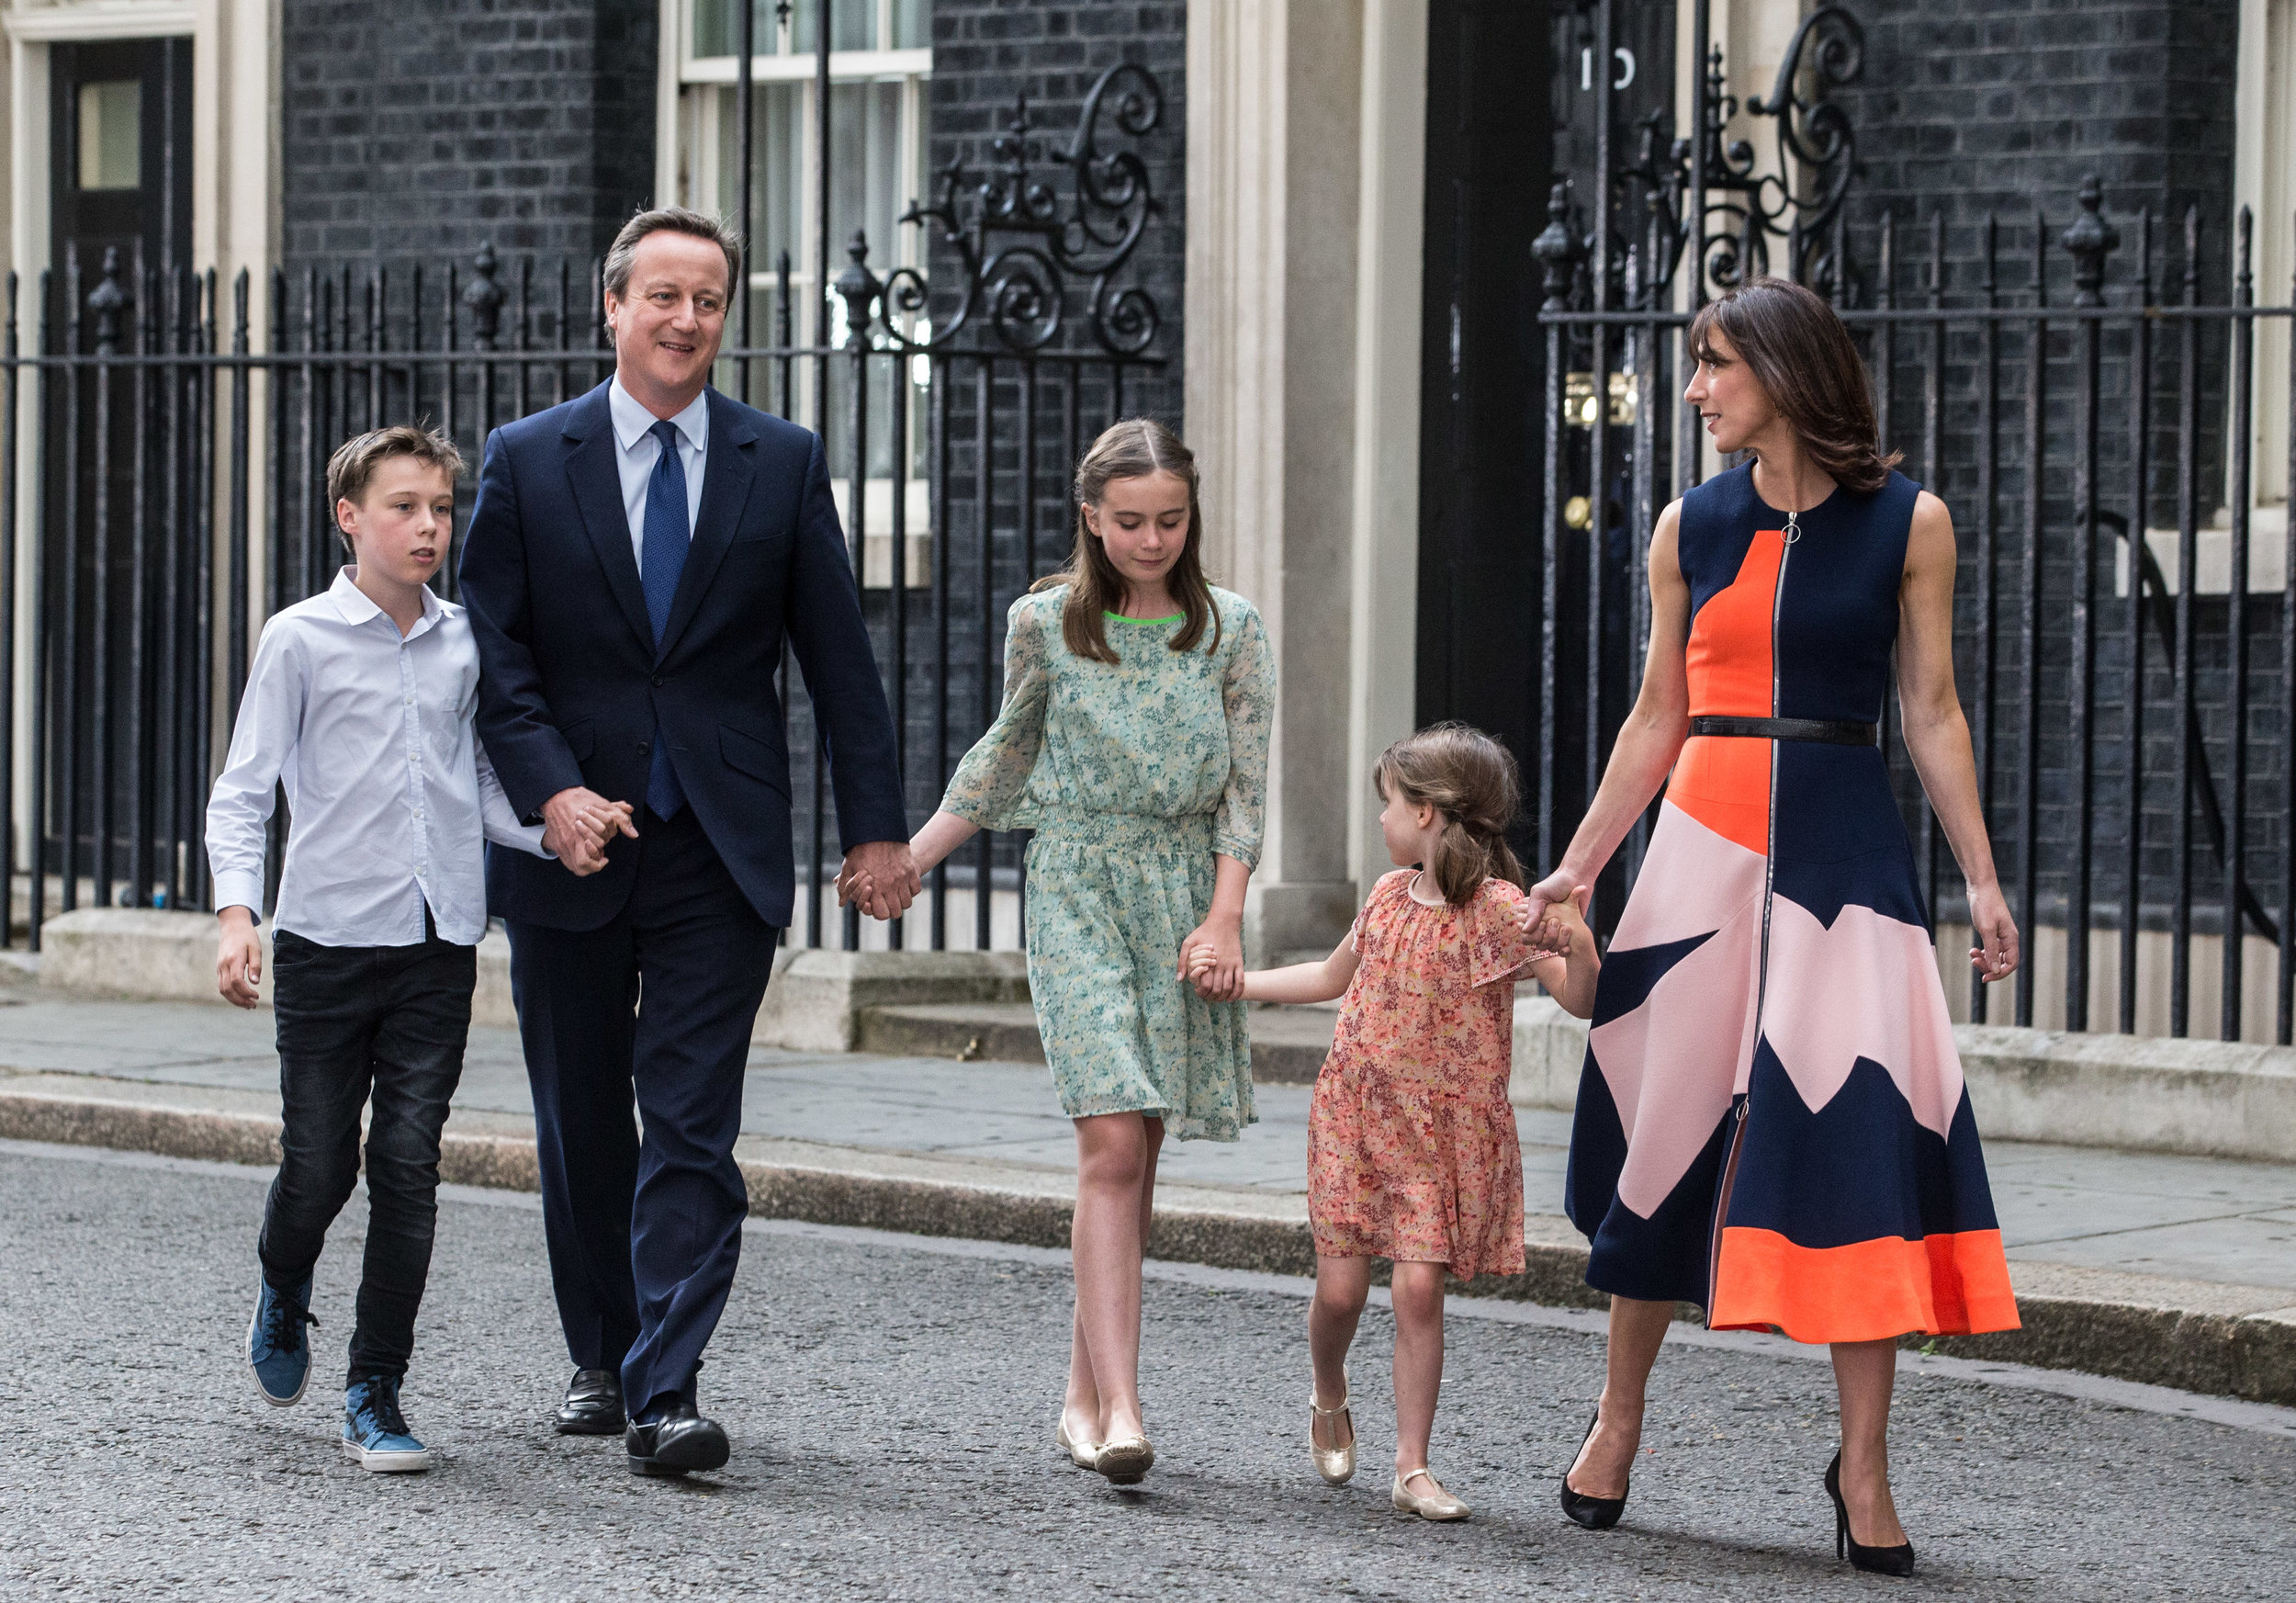 David and Samantha Cameron leaving 10 Downing Street with their children